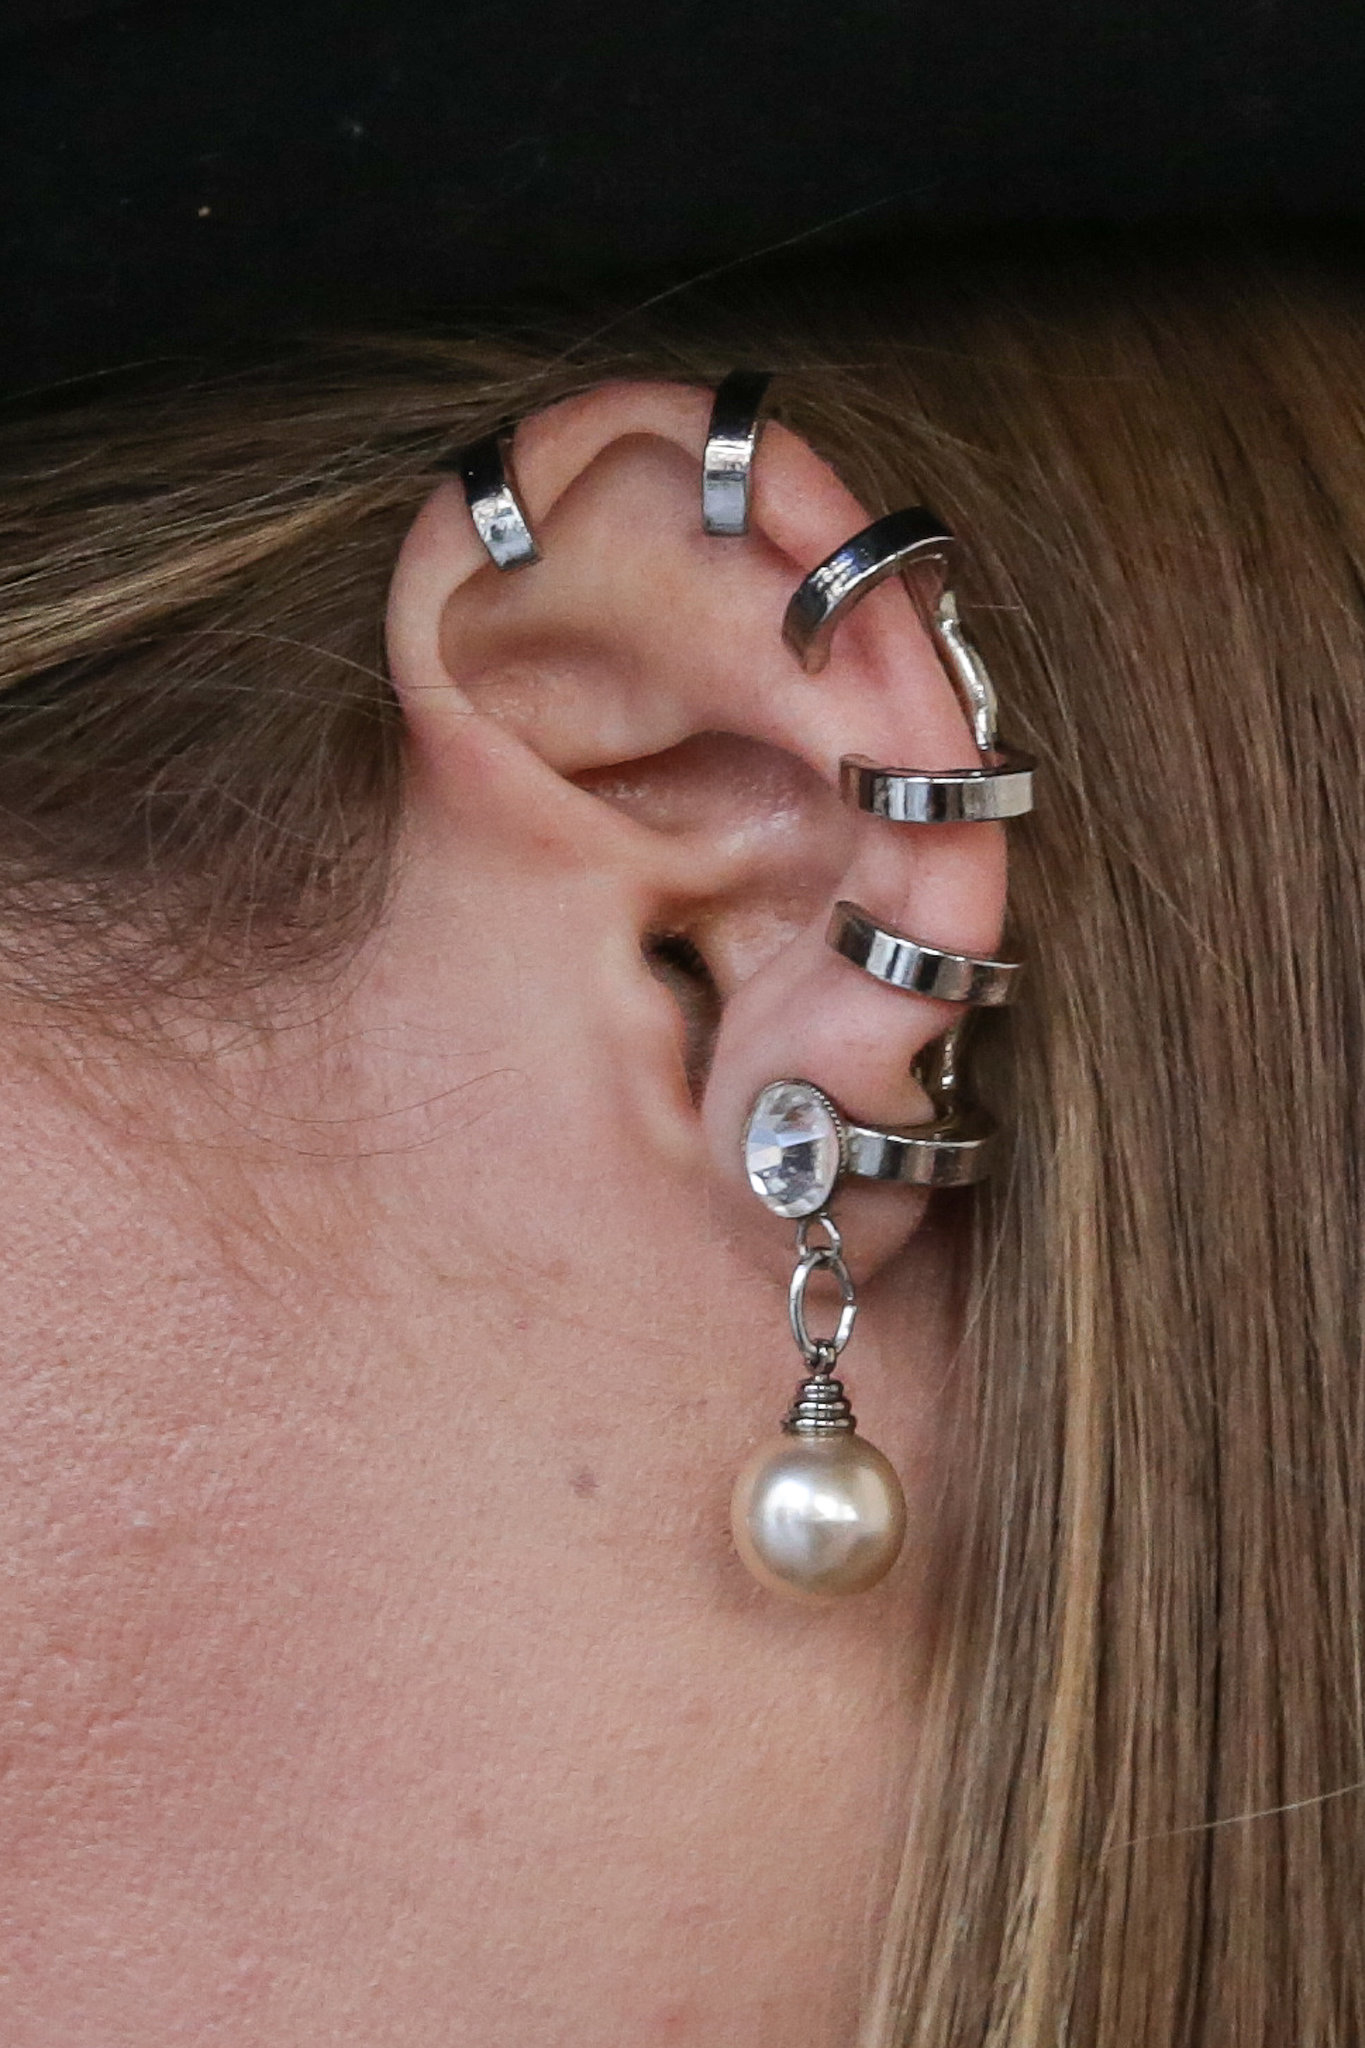 An army of ear cuffs.